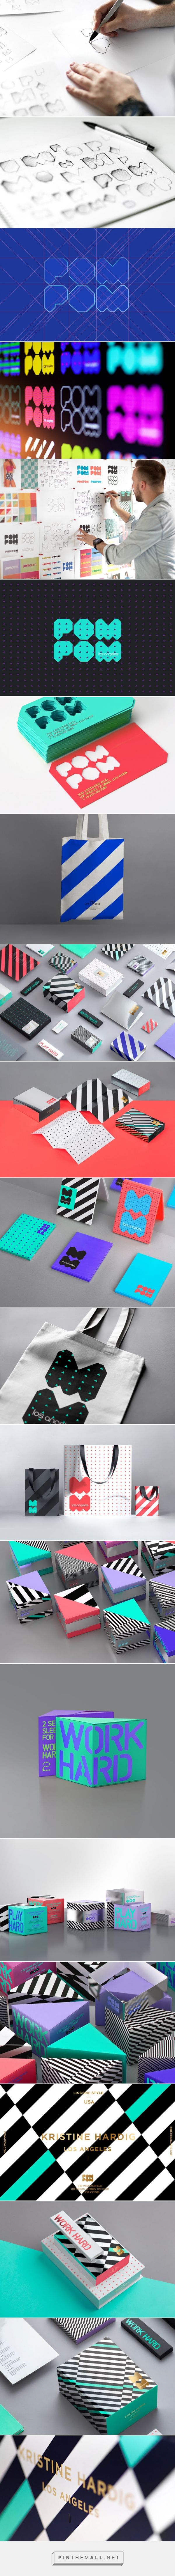 POM POM #lingerie #packaging designed by Reynolds and Reyner​ - http://www.packagingoftheworld.com/2015/05/pom-pom.html